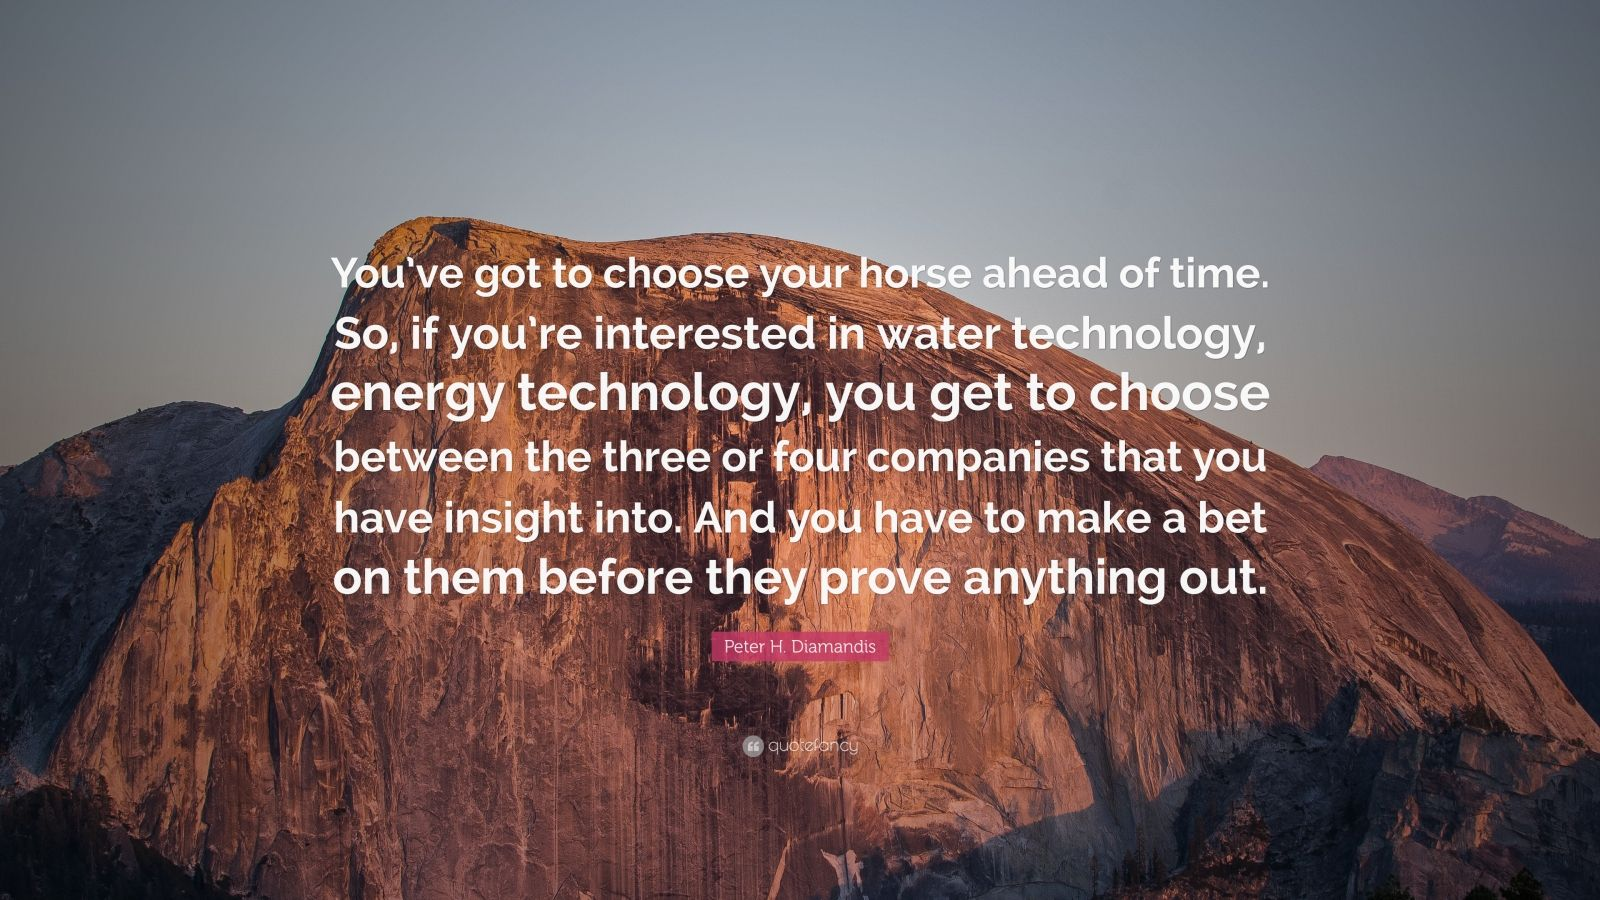 """Peter H. Diamandis Quote: """"You've got to choose your horse ahead of time. So, if you're interested in water technology, energy technology, you get to choose between the three or four companies that you have insight into. And you have to make a bet on them before they prove anything out."""""""